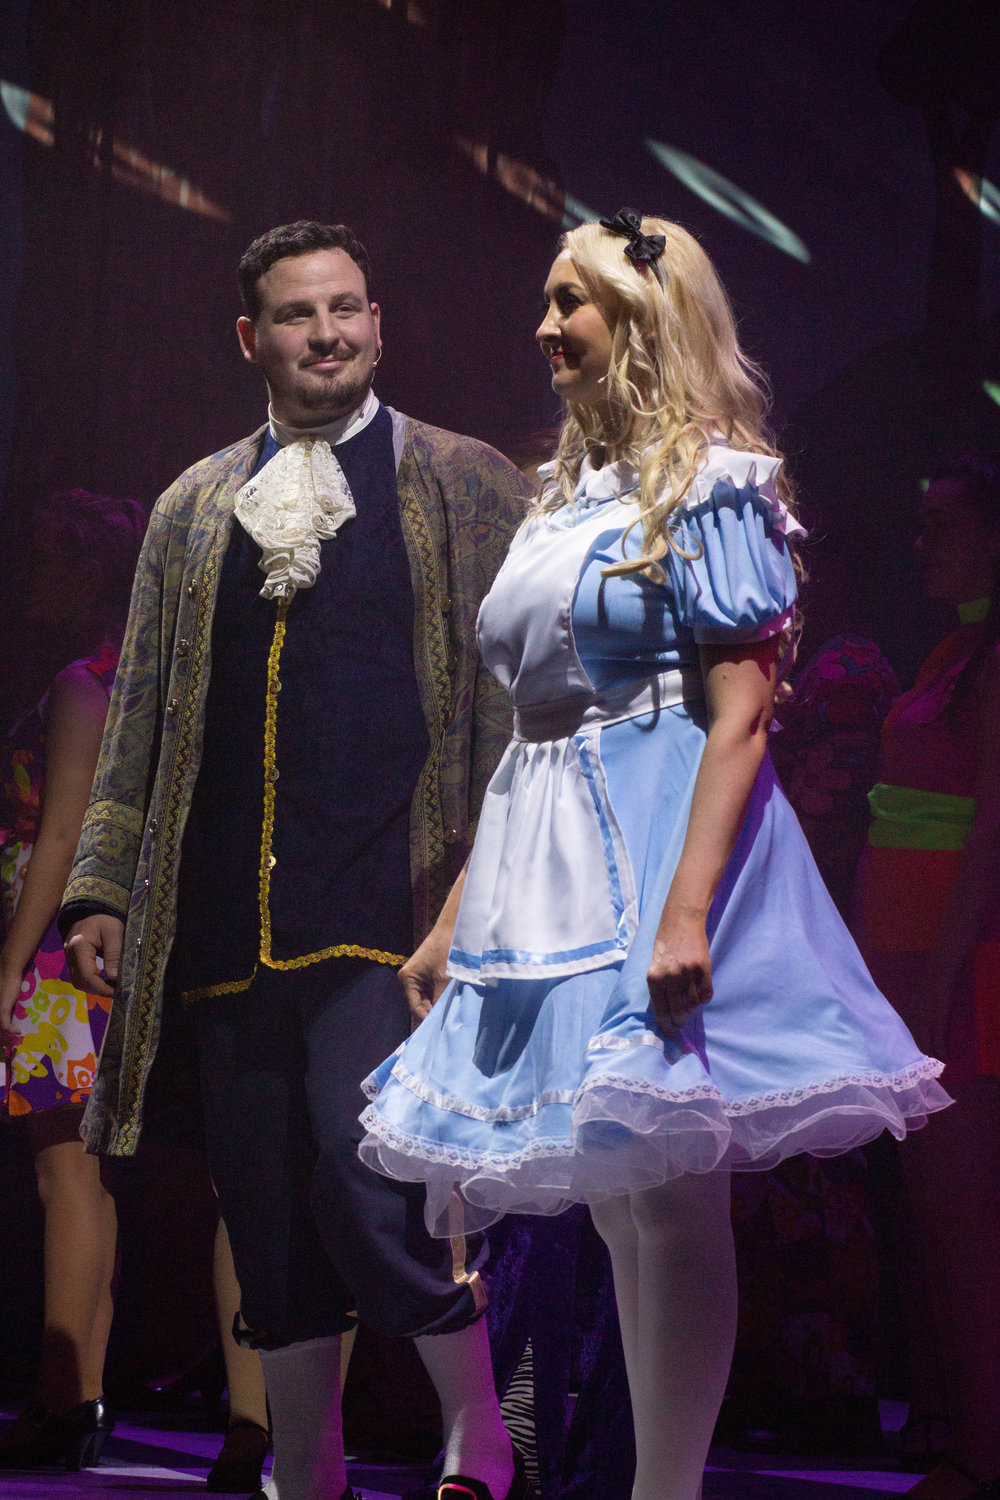 Alice_In_Wonderland_Panto-8535.jpg